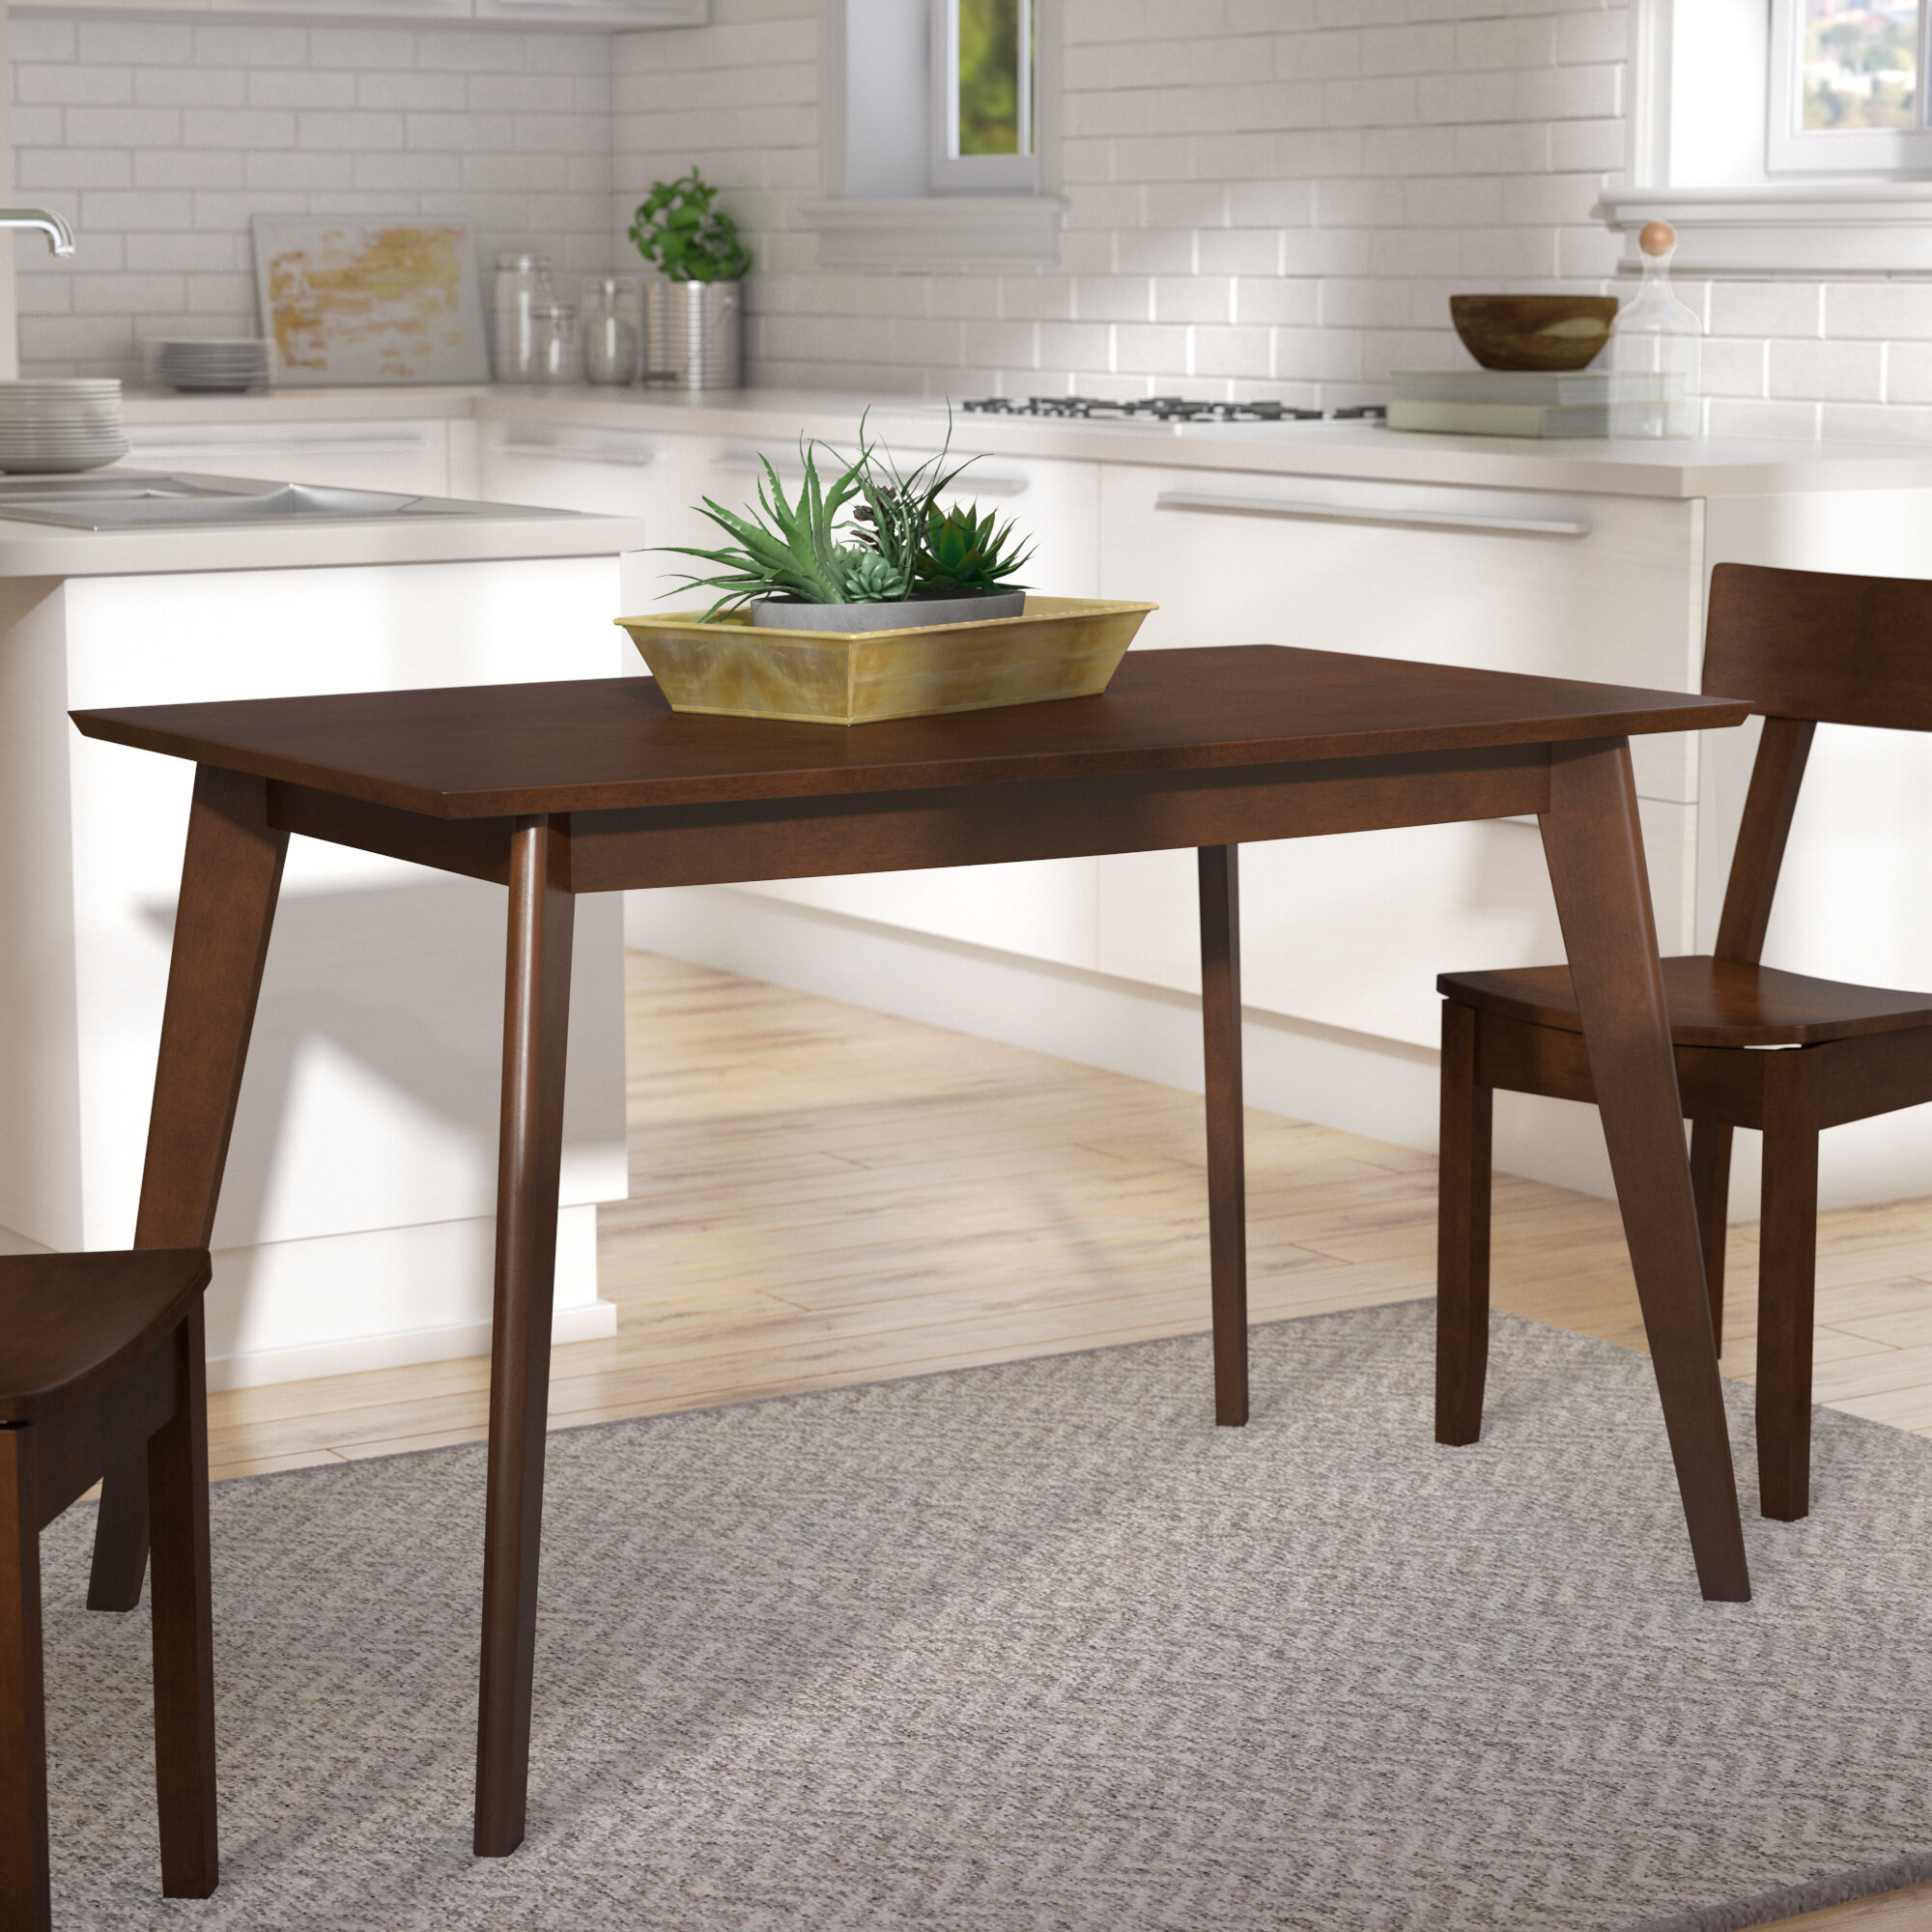 Langley Street Kitchen Dining Tables You Ll Love In 2021 Wayfair